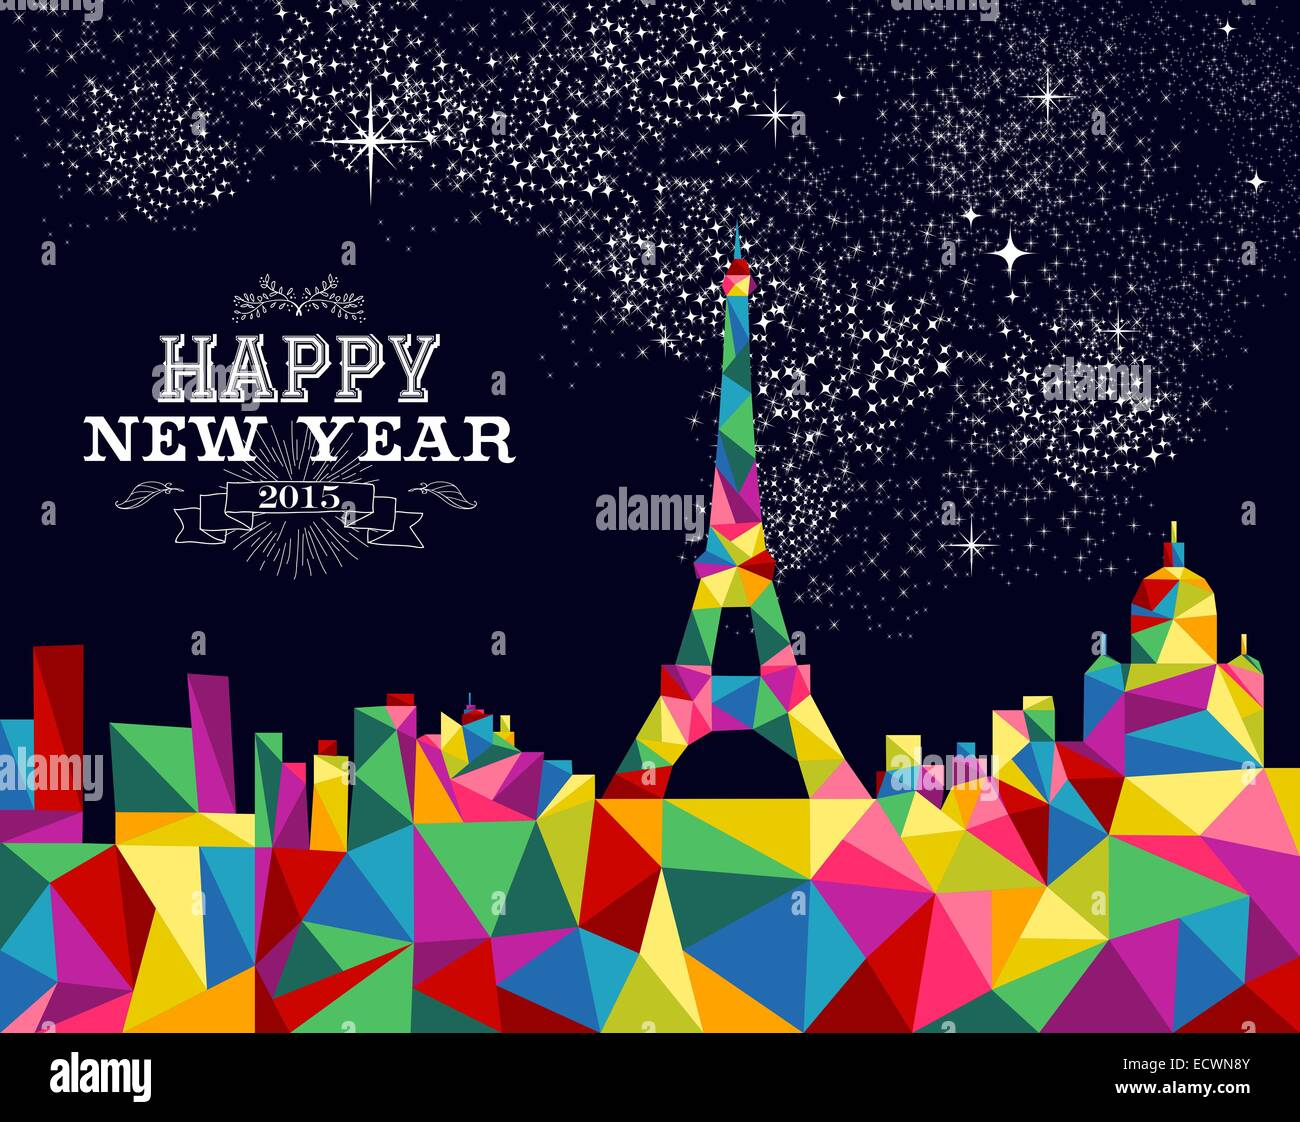 Happy new year greeting card or poster design with colorful happy new year greeting card or poster design with colorful triangle paris skyline and vintage label illustration eps10 vector kristyandbryce Choice Image